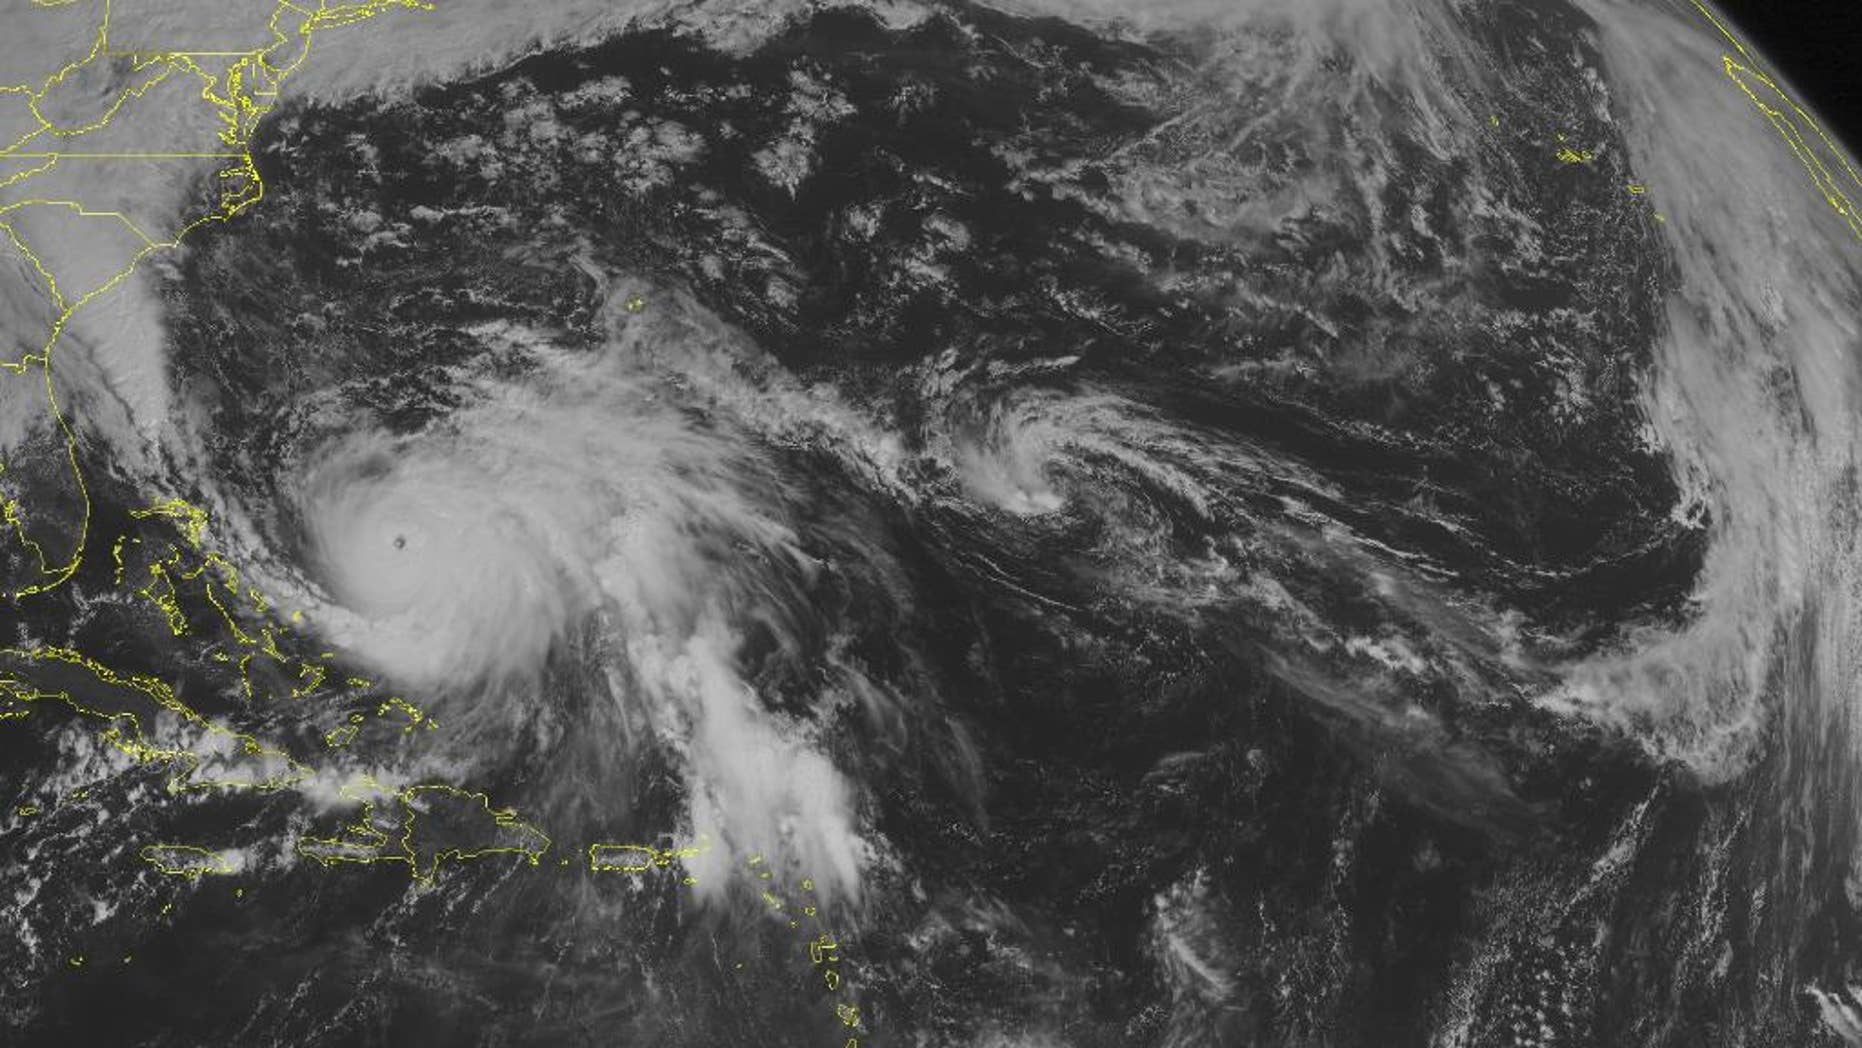 This NOAA satellite image taken Saturday, Oct. 3, 2015 at 09:45 AM EDT shows major hurricane Joaquin, located east of the Bahamas and moving towards the northeast with maximum sustained winds of 155 miles per hour. Clouds with rain and thunderstorms are affecting Cuba and Haiti, Puerto Rico, and the northern Virgin Islands. (Weather Underground via AP)